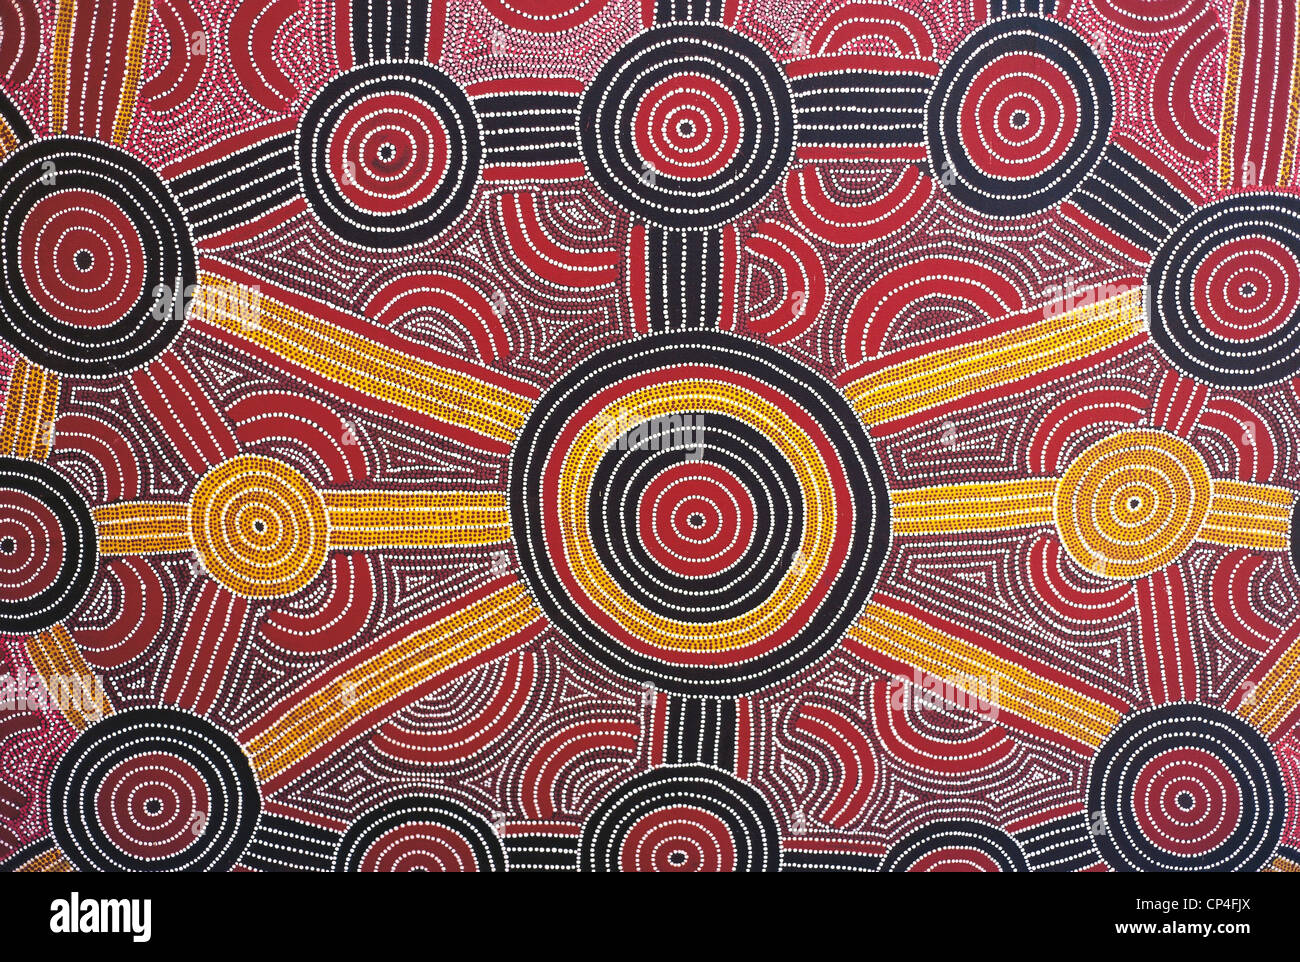 Australia - Uluru-Kata Tjuta National Park. Aboriginal painting in the hotel Sheraton. - Stock Image